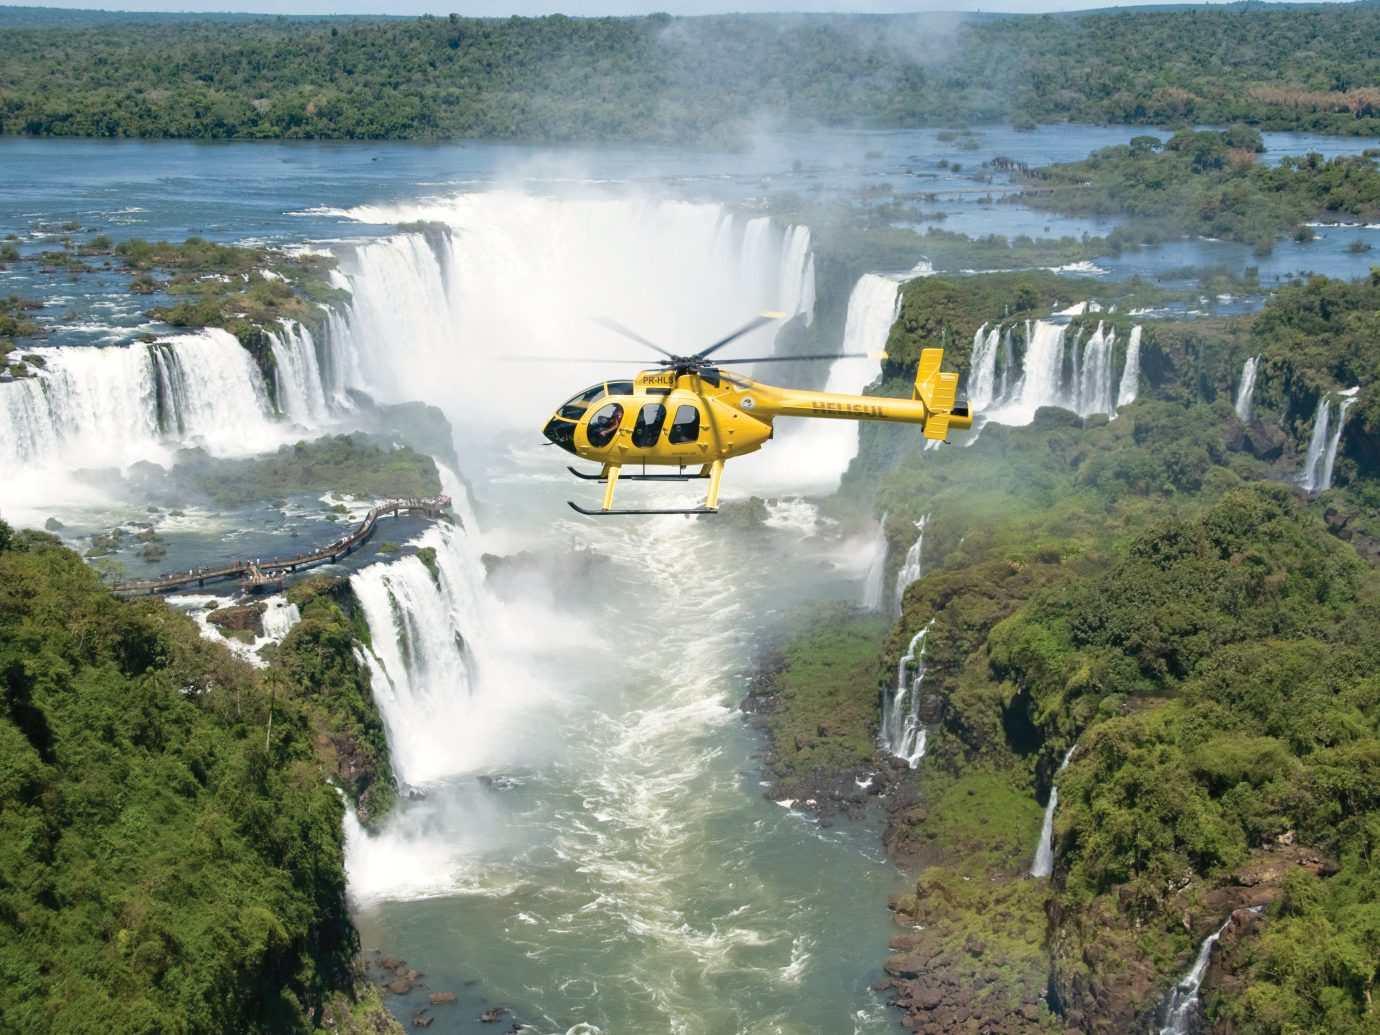 Helecopter Going Over Waterfall In Brazil By Belmond Hotel, Iguacu National Park